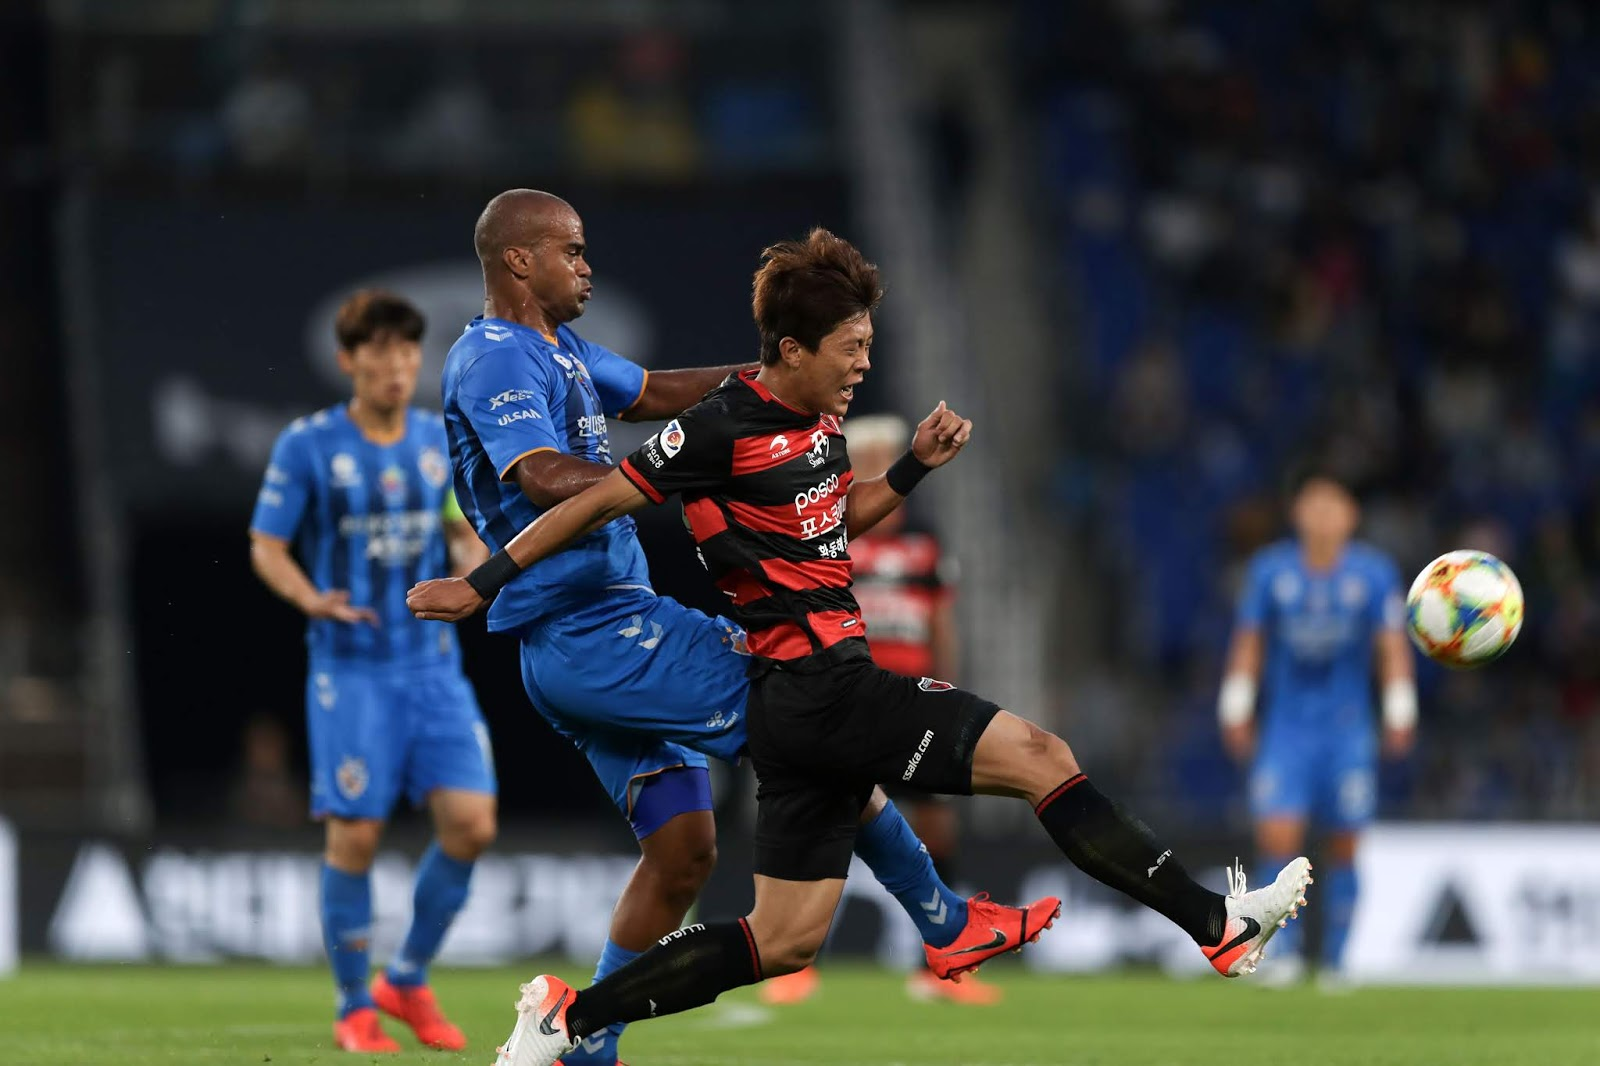 East Coast Derby Preview: Pohang Steelers vs Ulsan Hyundai